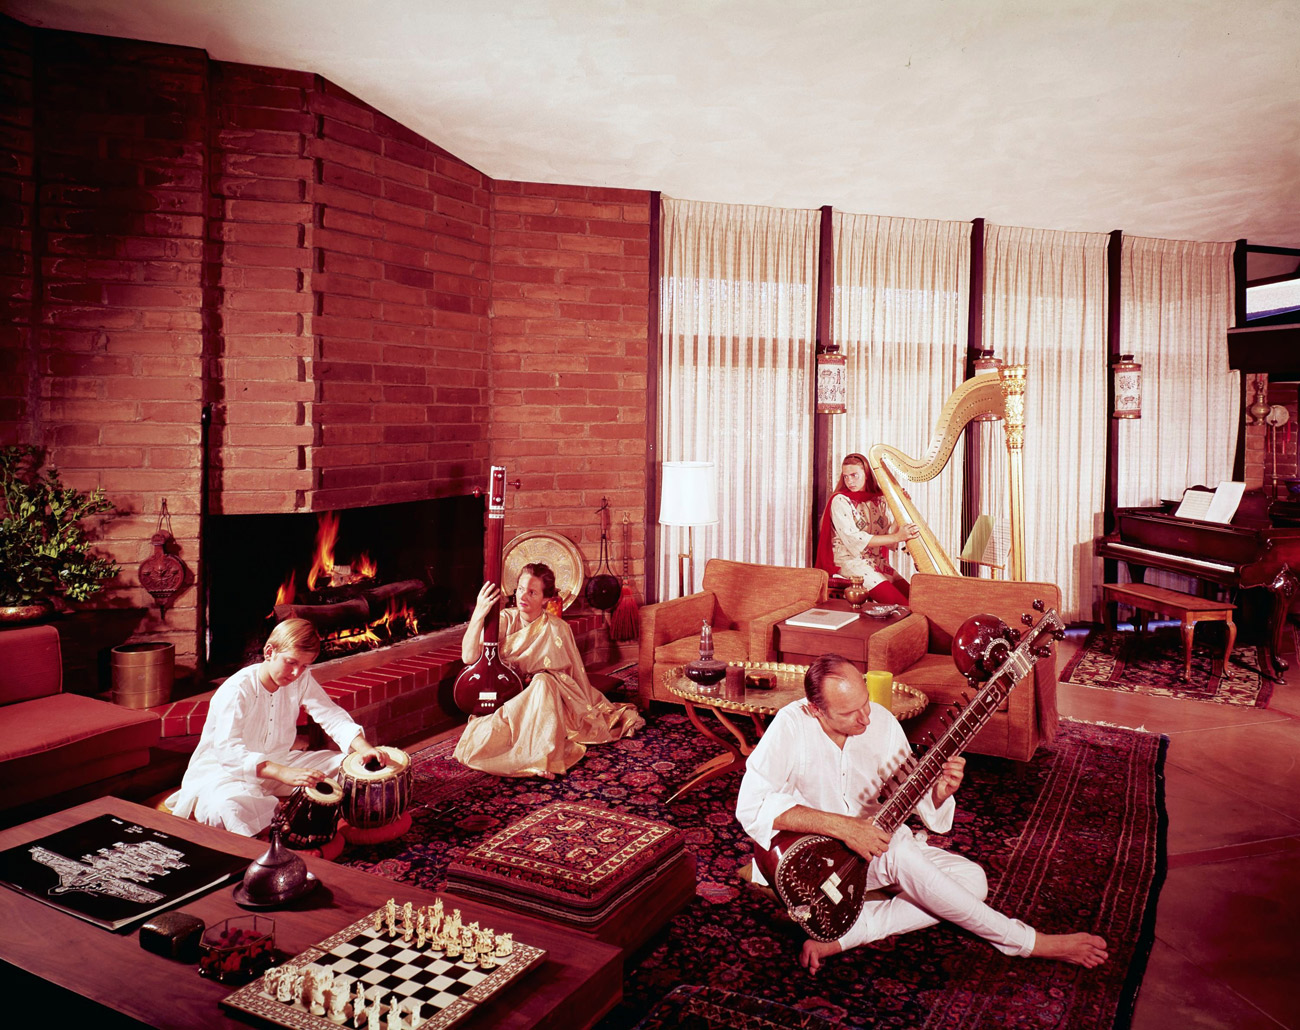 Four musicians with classical instruments, including a large harp, are seated in an expansive living room decorated in shades of red